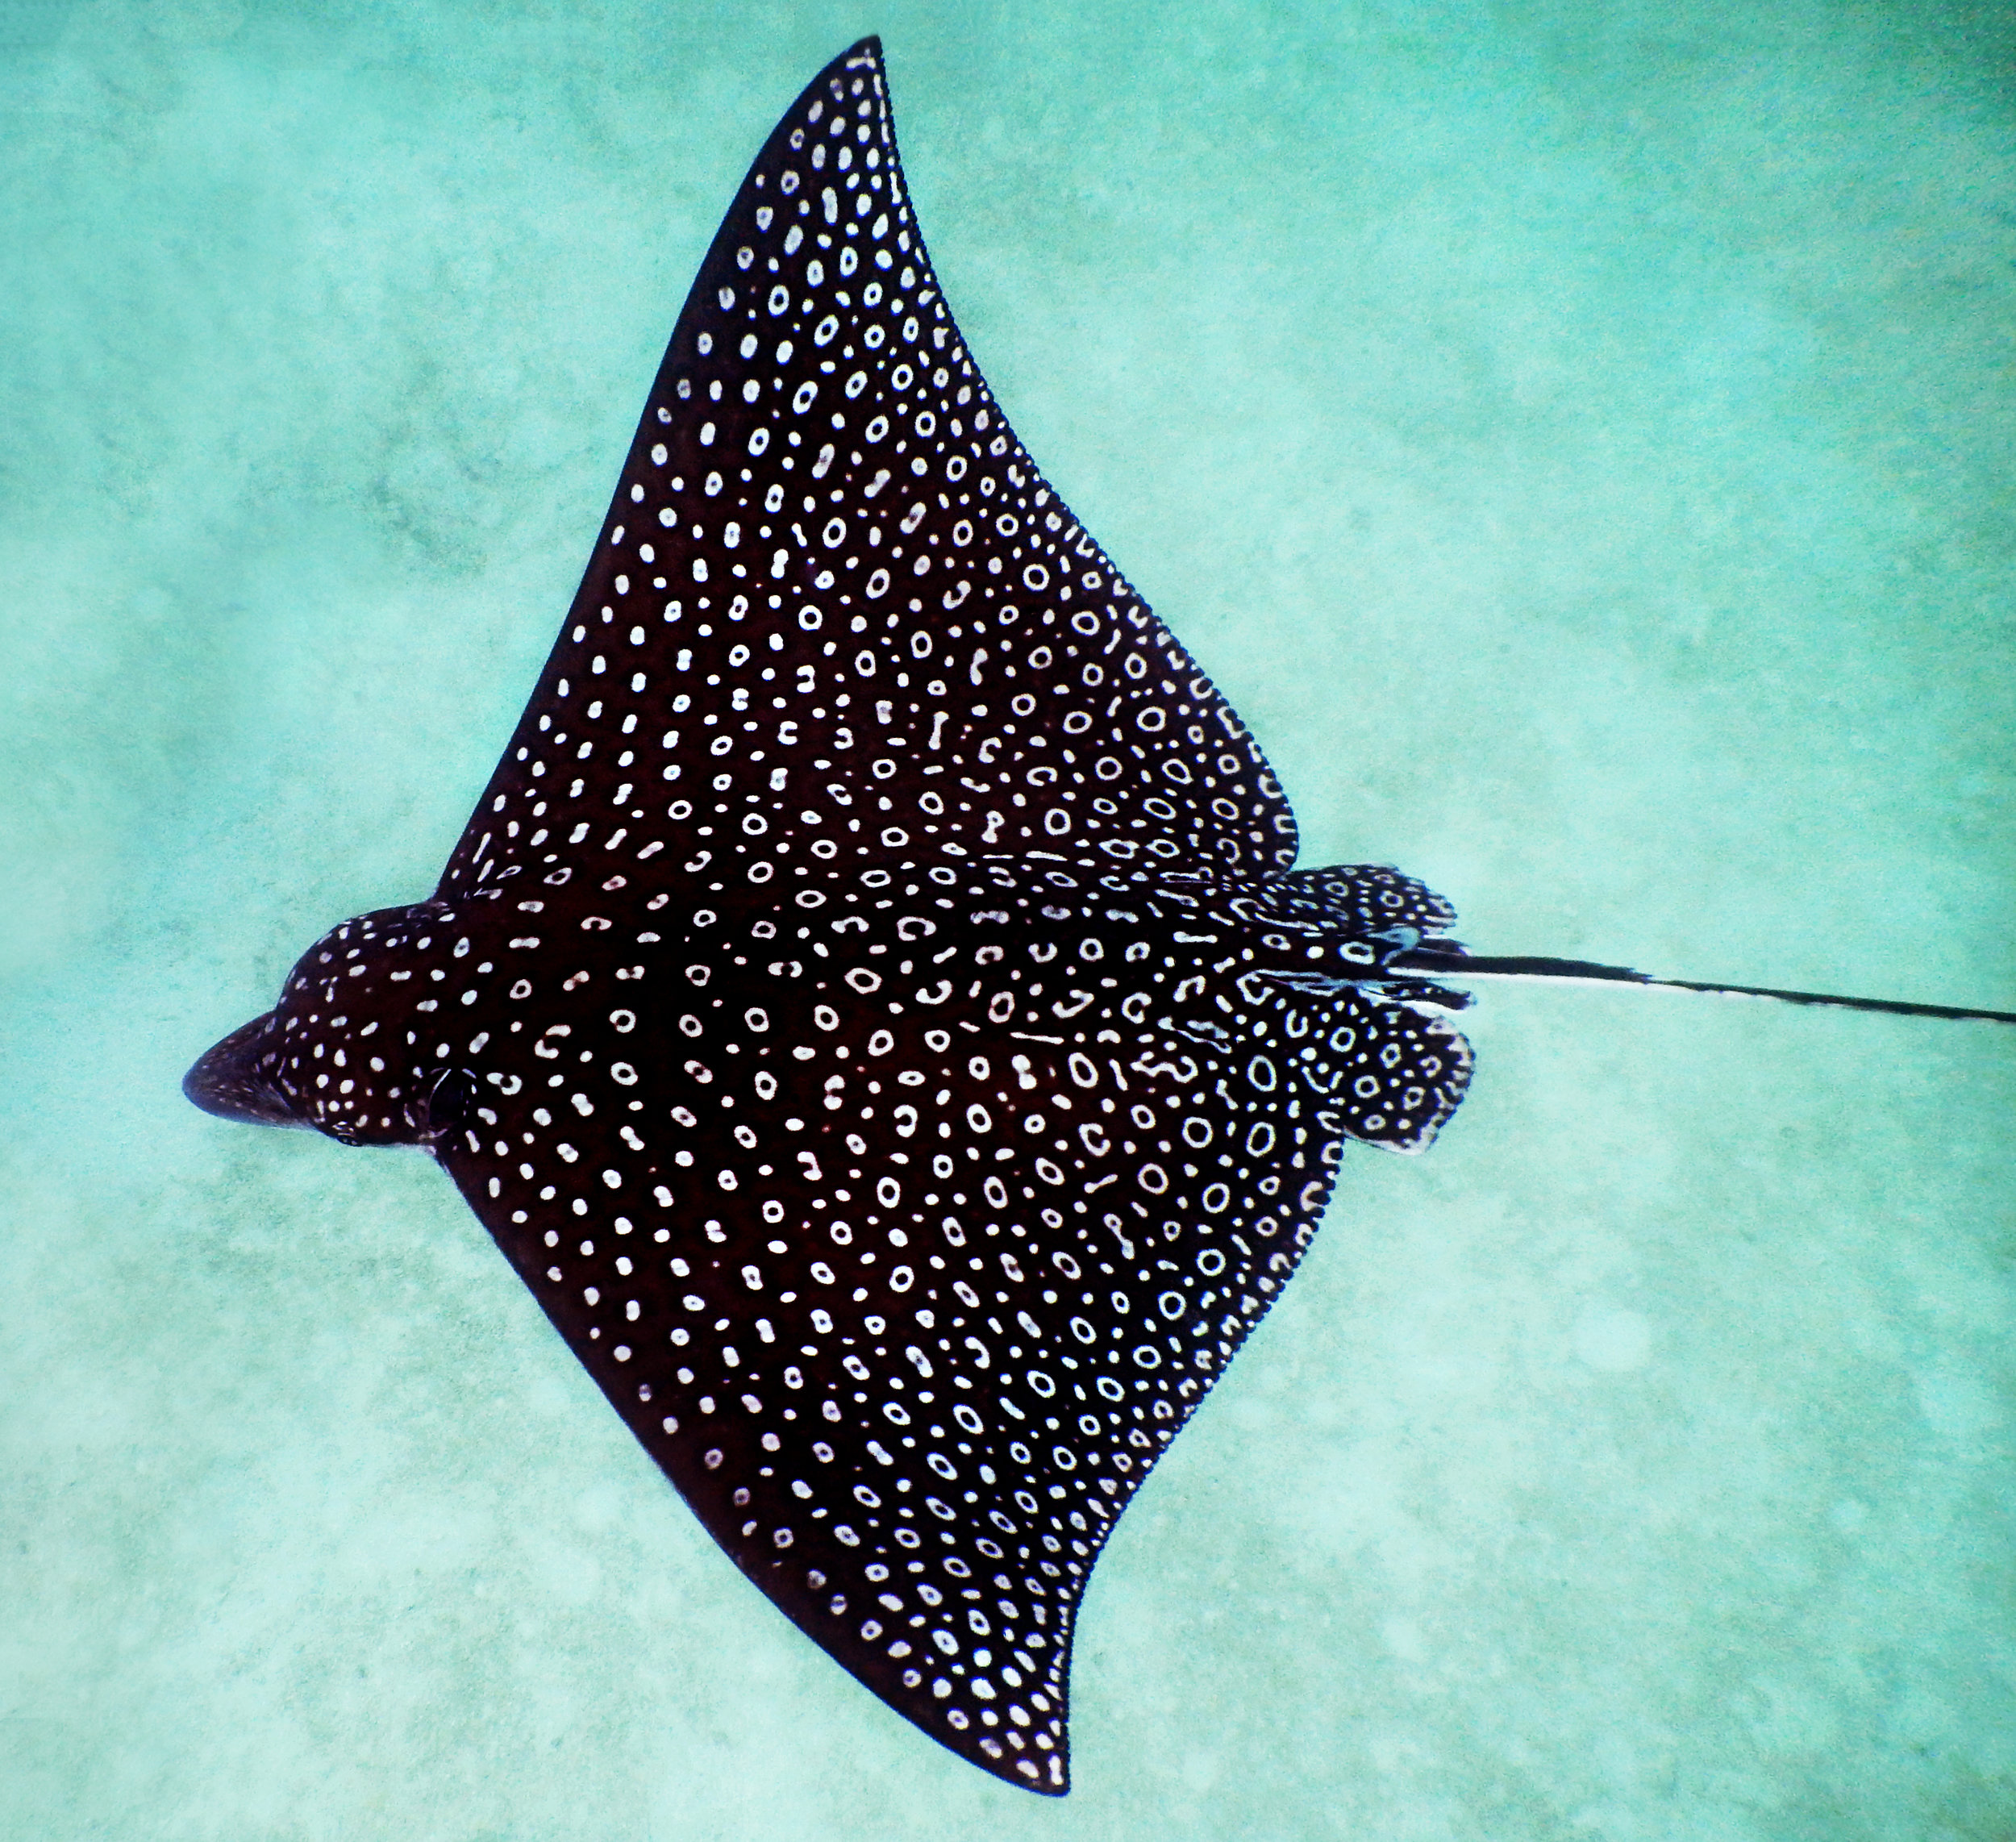 A spotted eagle ray ( Aetobatus narinari ) cruises over the sand in John Pennekamp Coral Reef State Park off Key Largo, FL.